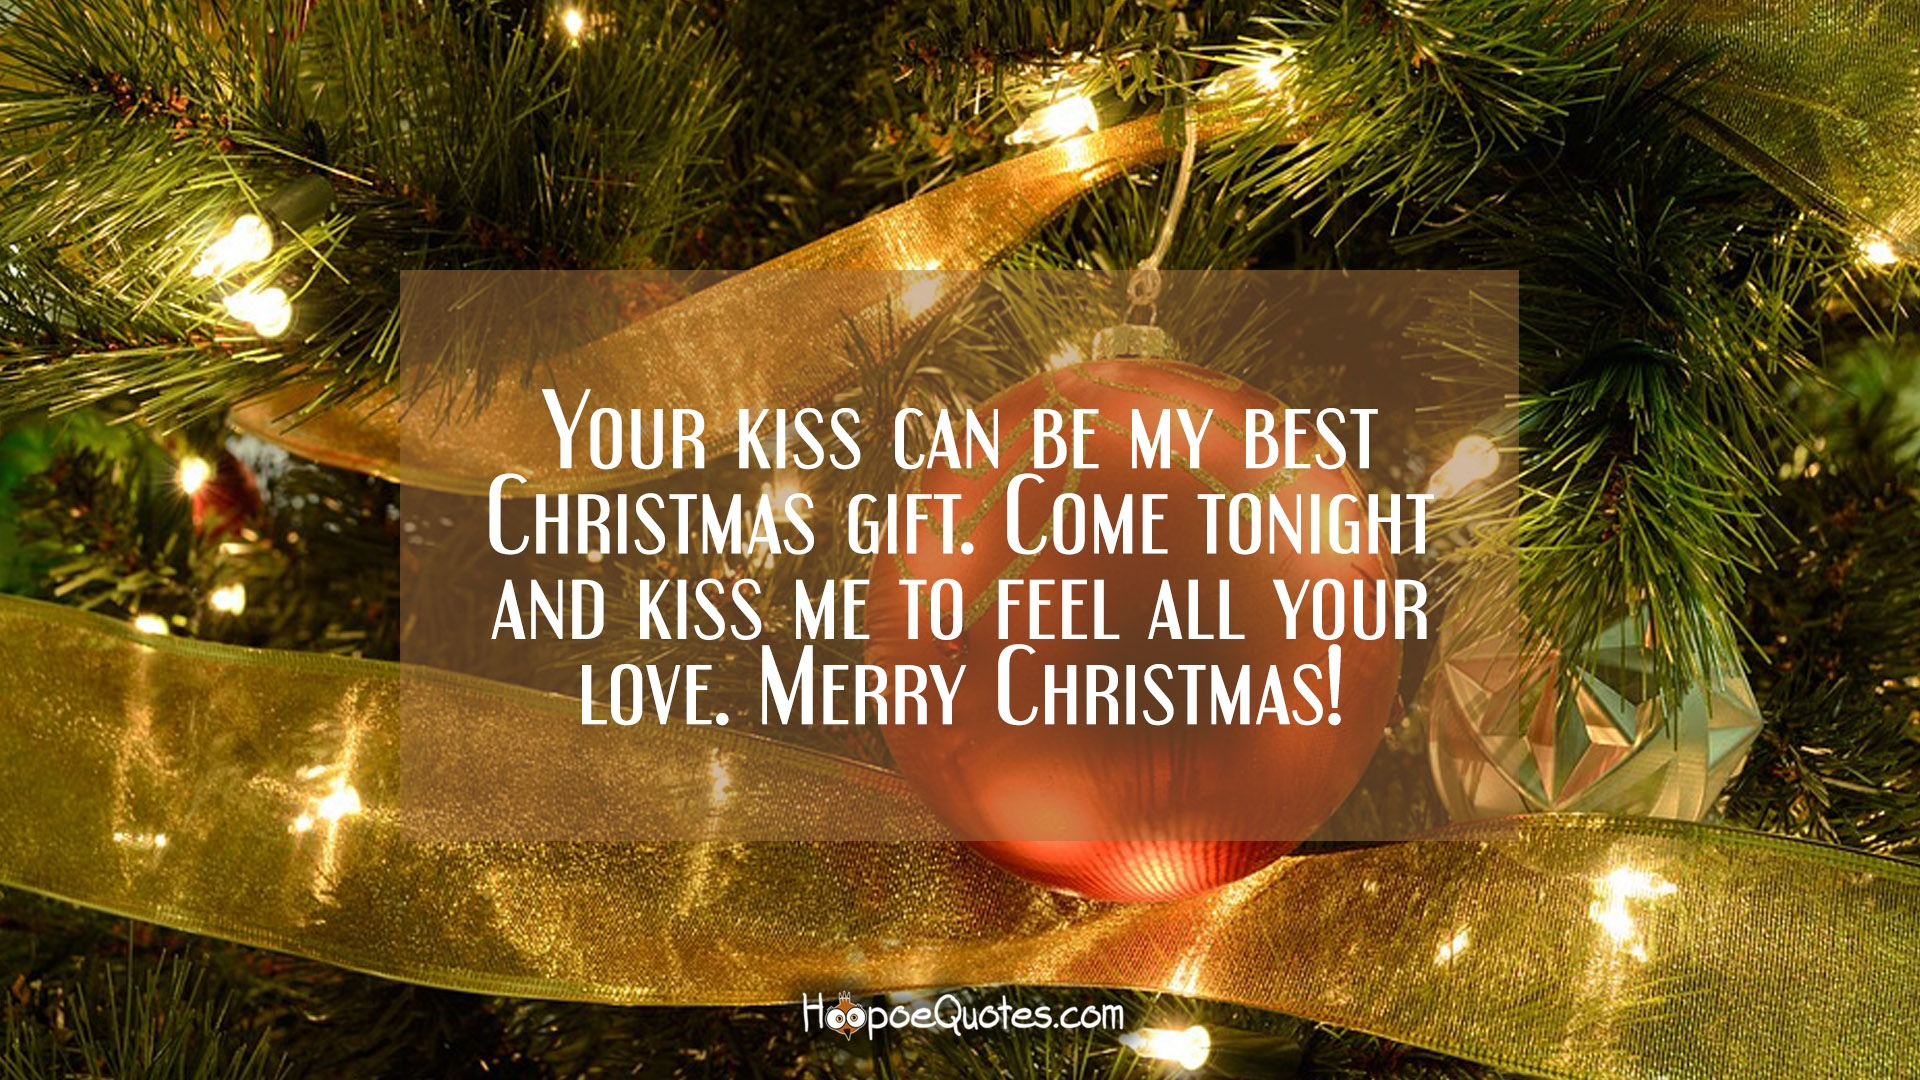 your kiss can be my best christmas gift come tonight and kiss me to feel all your love merry christmas